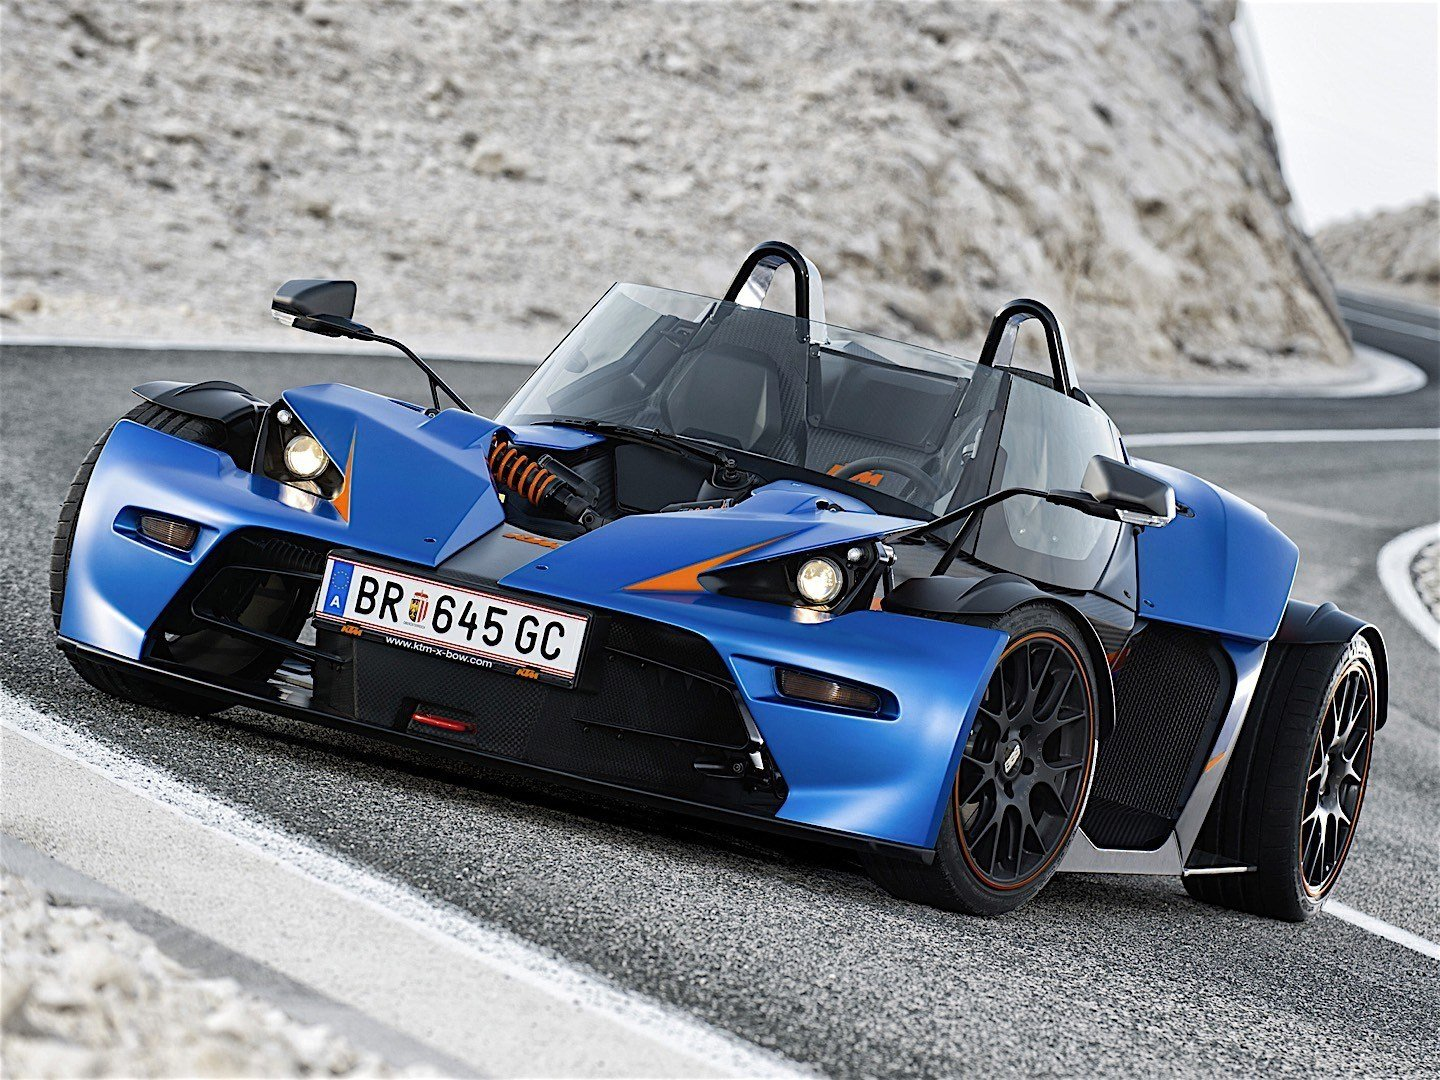 New Ktm X Bow Gt Specs Photos 2013 2014 2015 2016 2017 On This Month